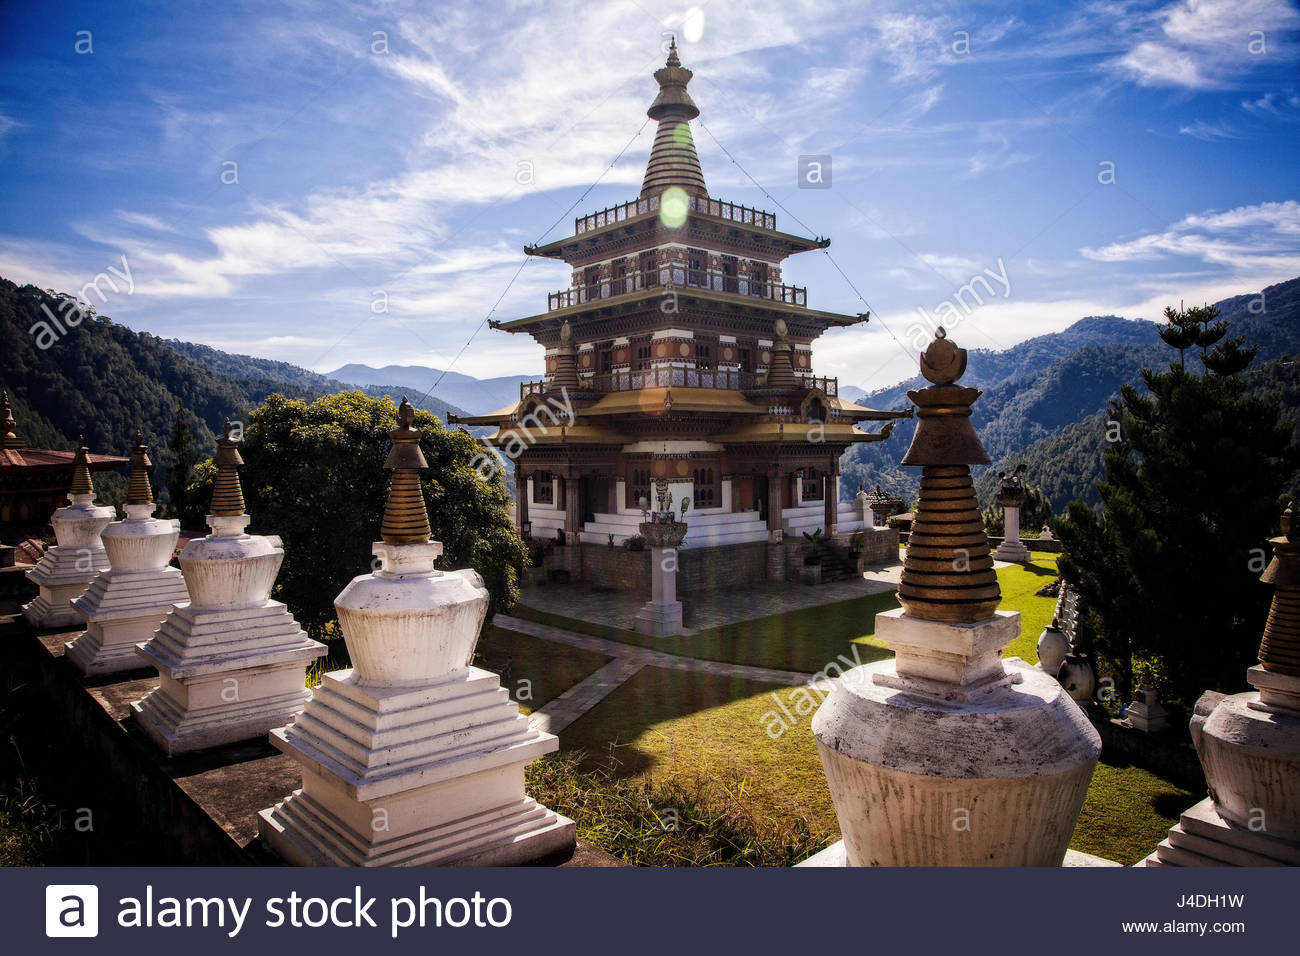 Khamsum Yuelly Namgyal Chorten is located at the North end of the Punakha Vally, Bhutan. - Stock Image